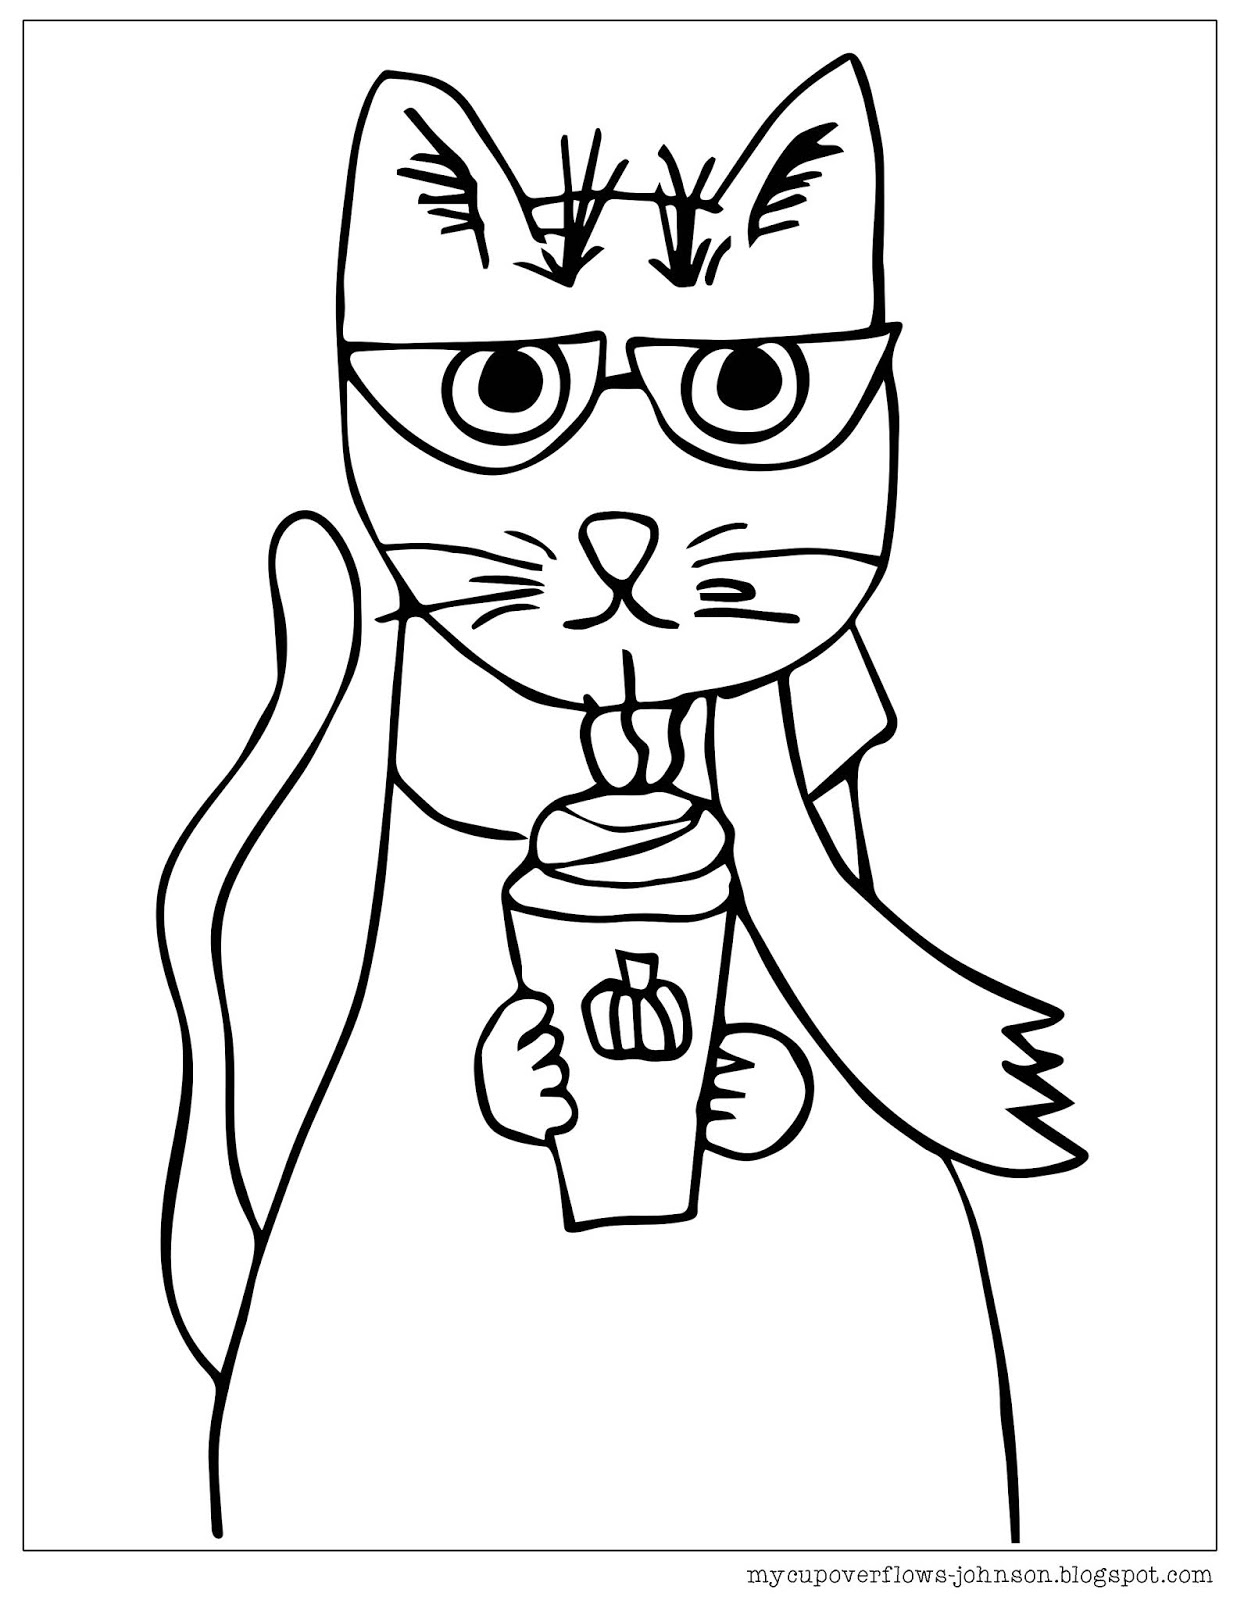 My Cup Overflows: Cat Coloring Page